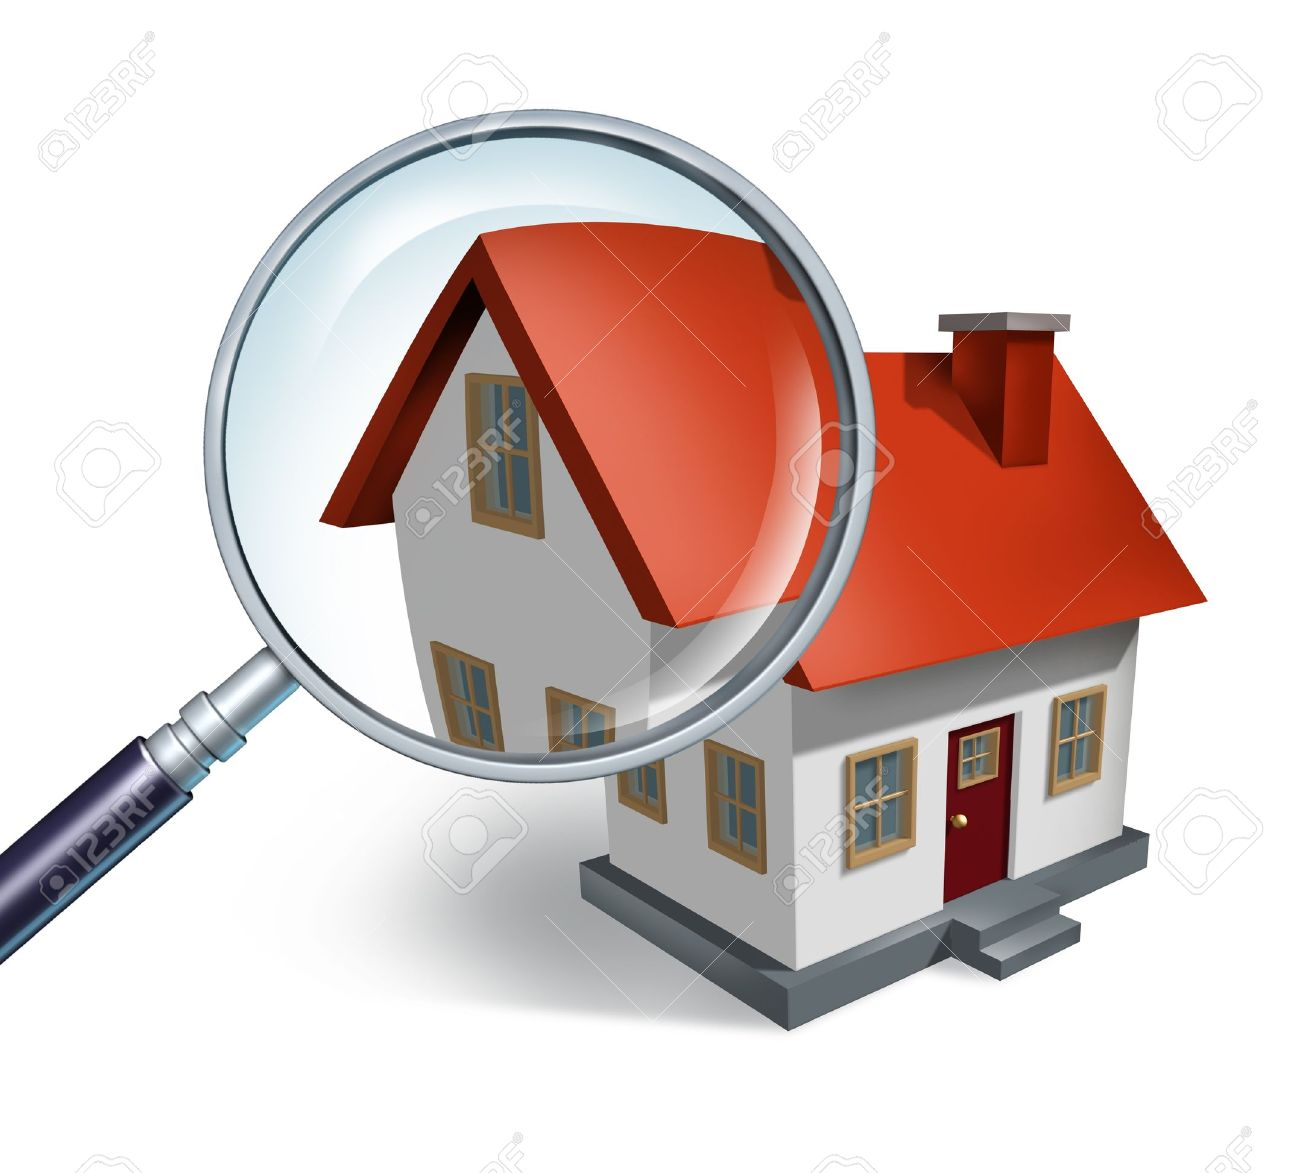 House hunting and searching for real estate homes for sale  that need to be inspected by a home inspector concept as a magnifying glass inspecting a model single home building structure. Stock Photo - 11840300